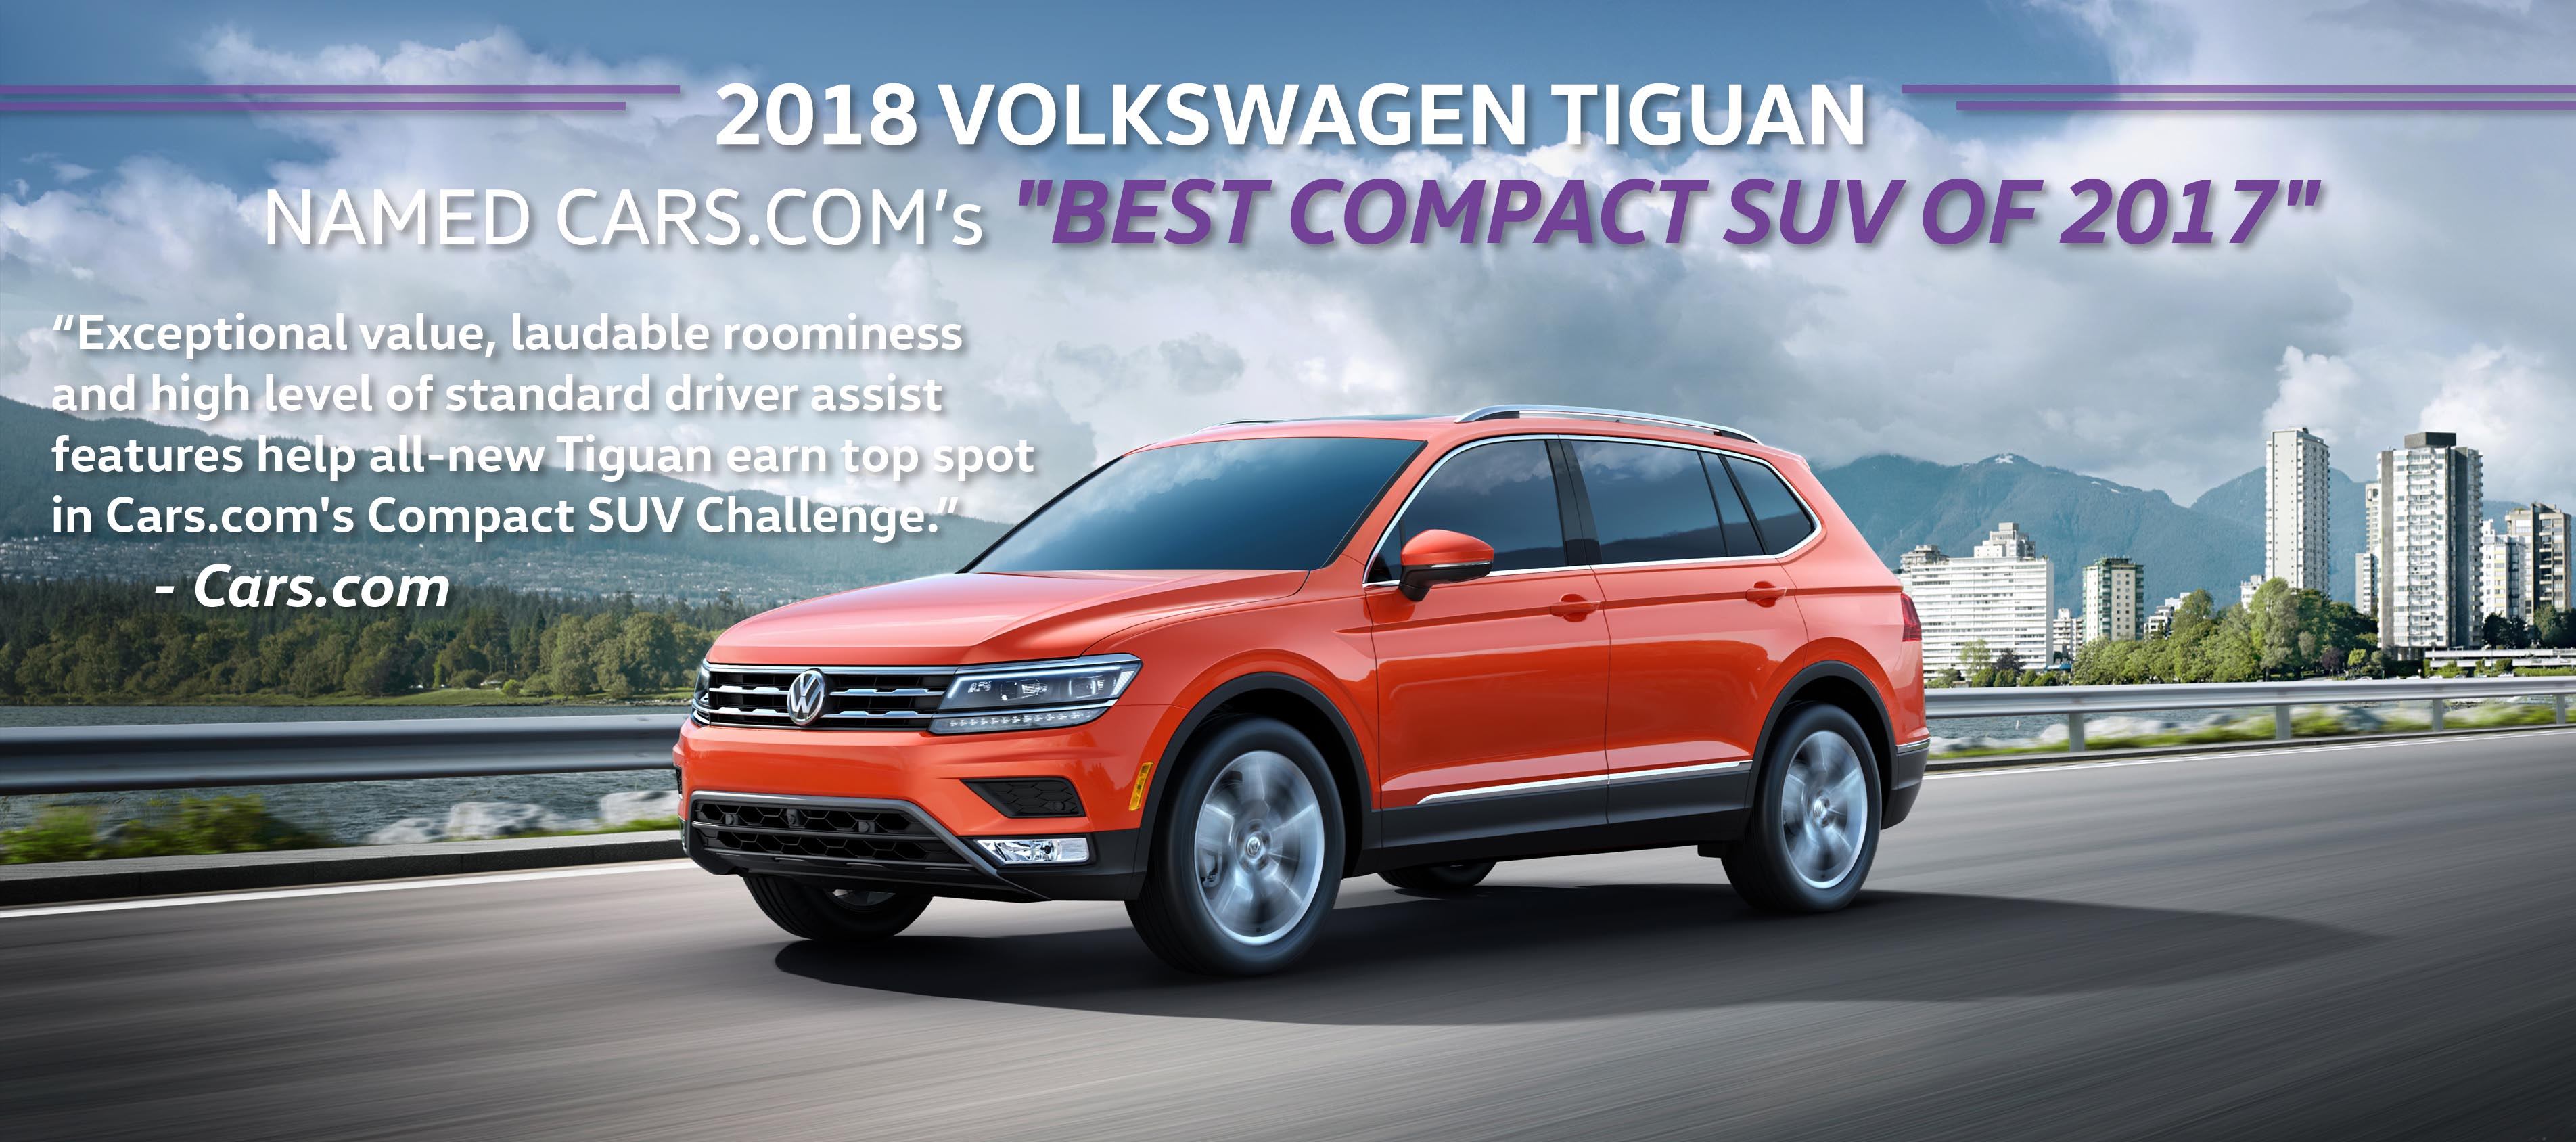 2018 volkswagen tiguan named cars com best compact suv of 2017